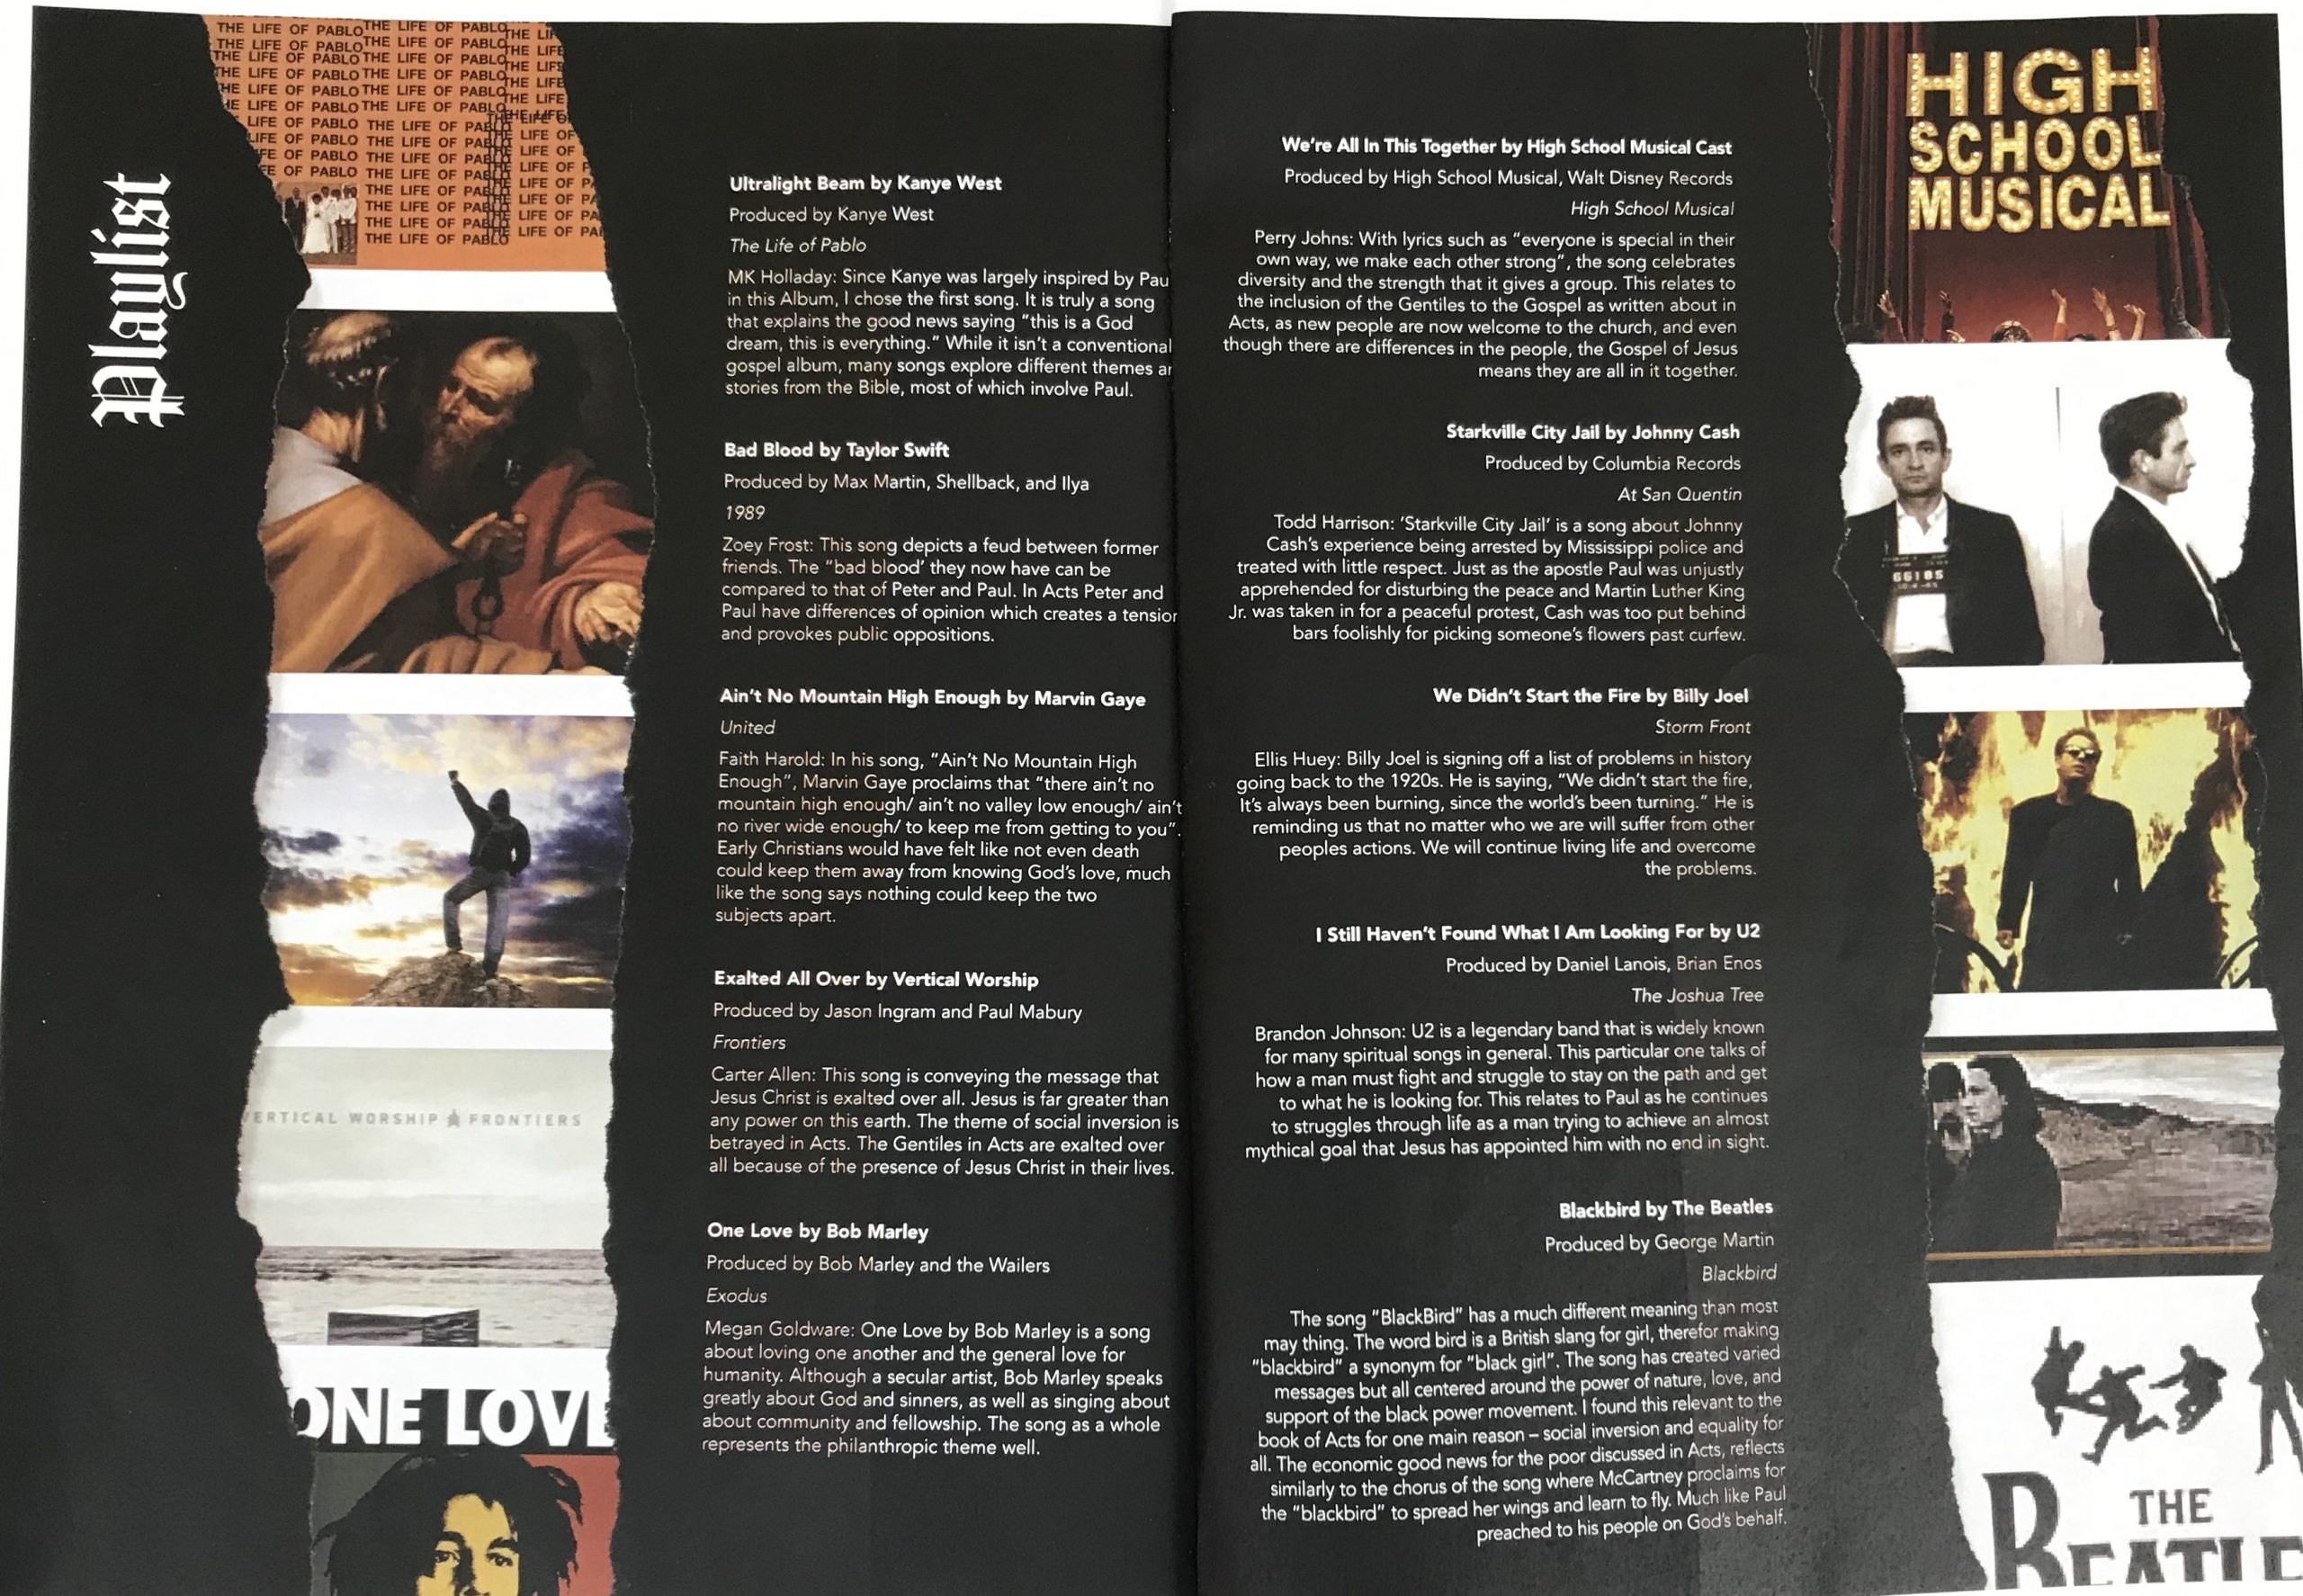 Magazine Spread with a soundtrack of songs and album covers.